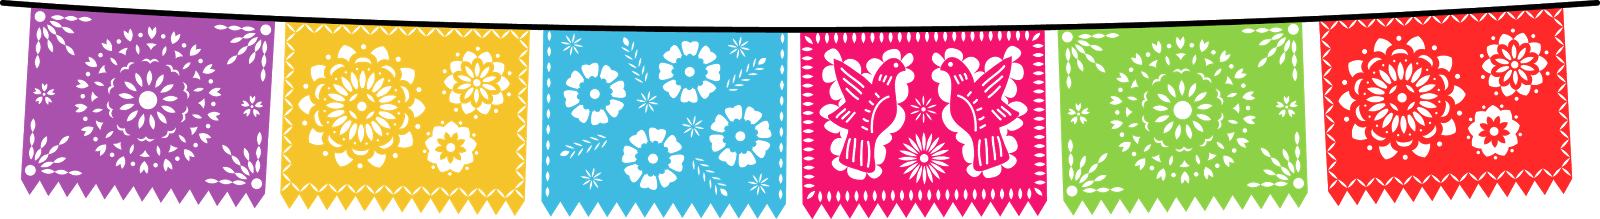 Mexico clipart banner. Images of transparent